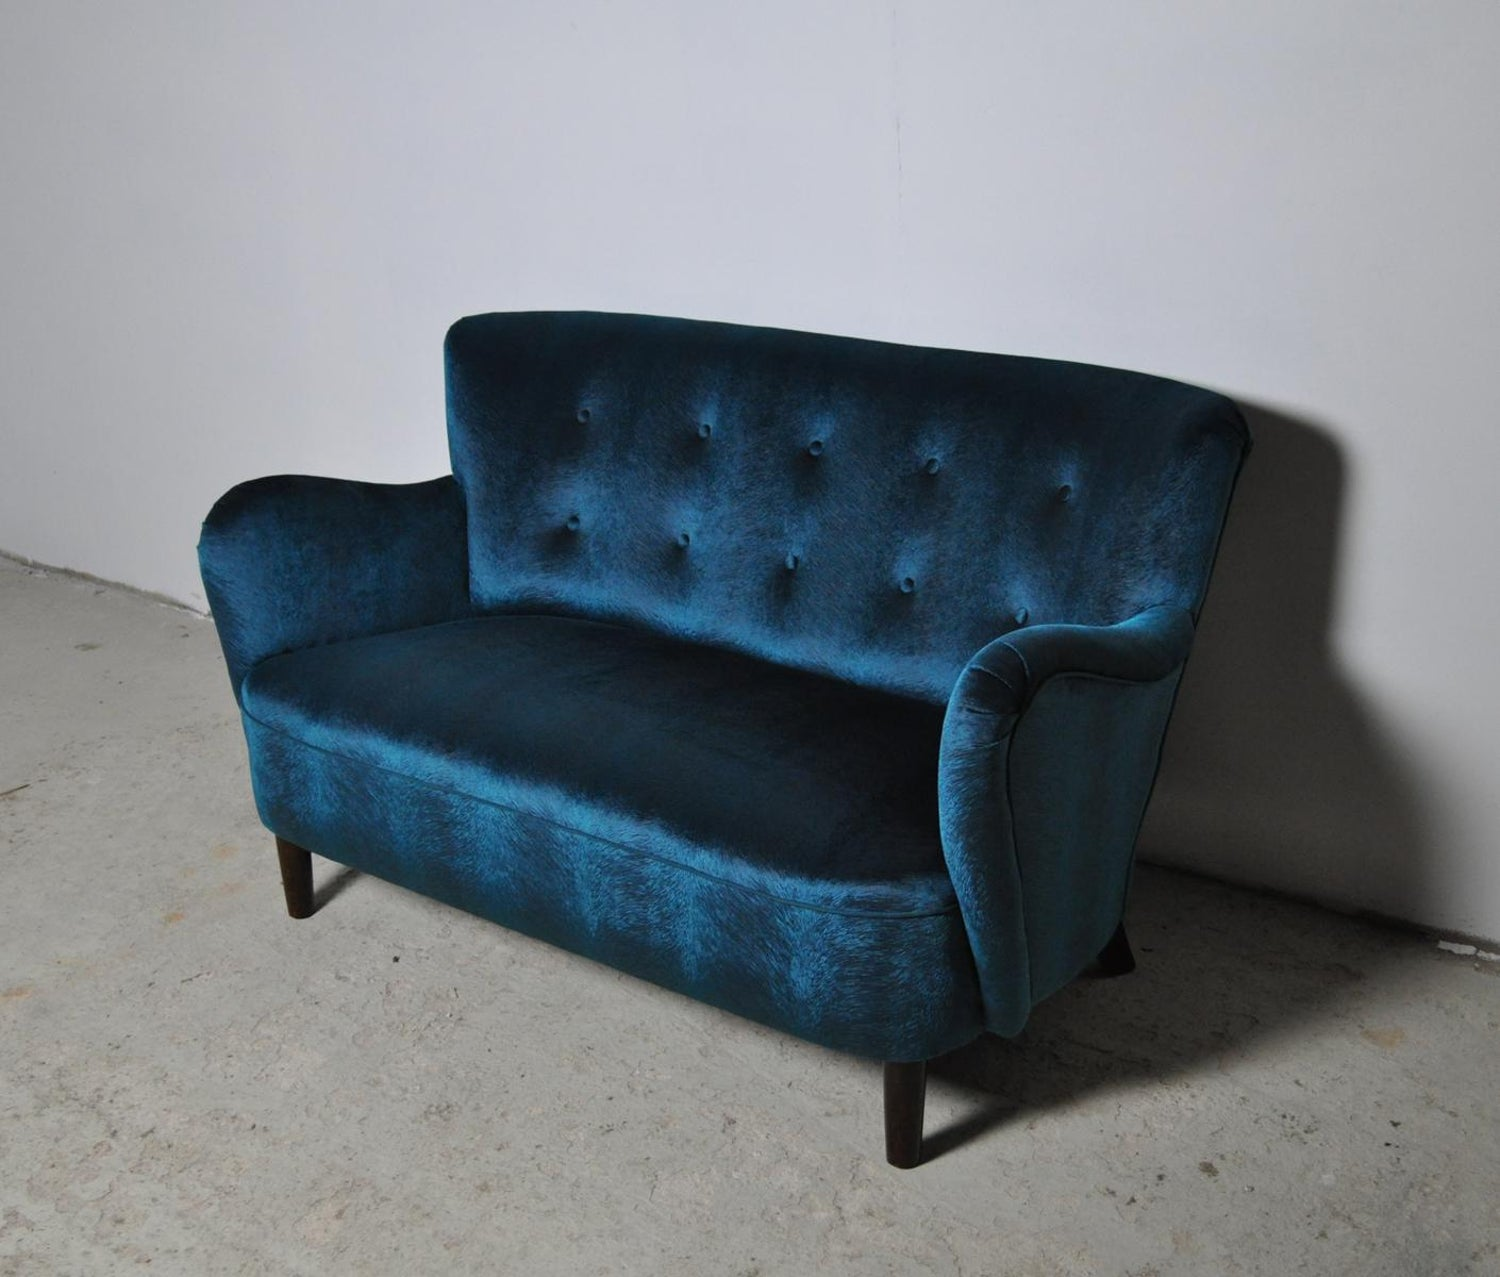 Elegant Early Midcentury Curved Sofa in Blue Velvet New ...